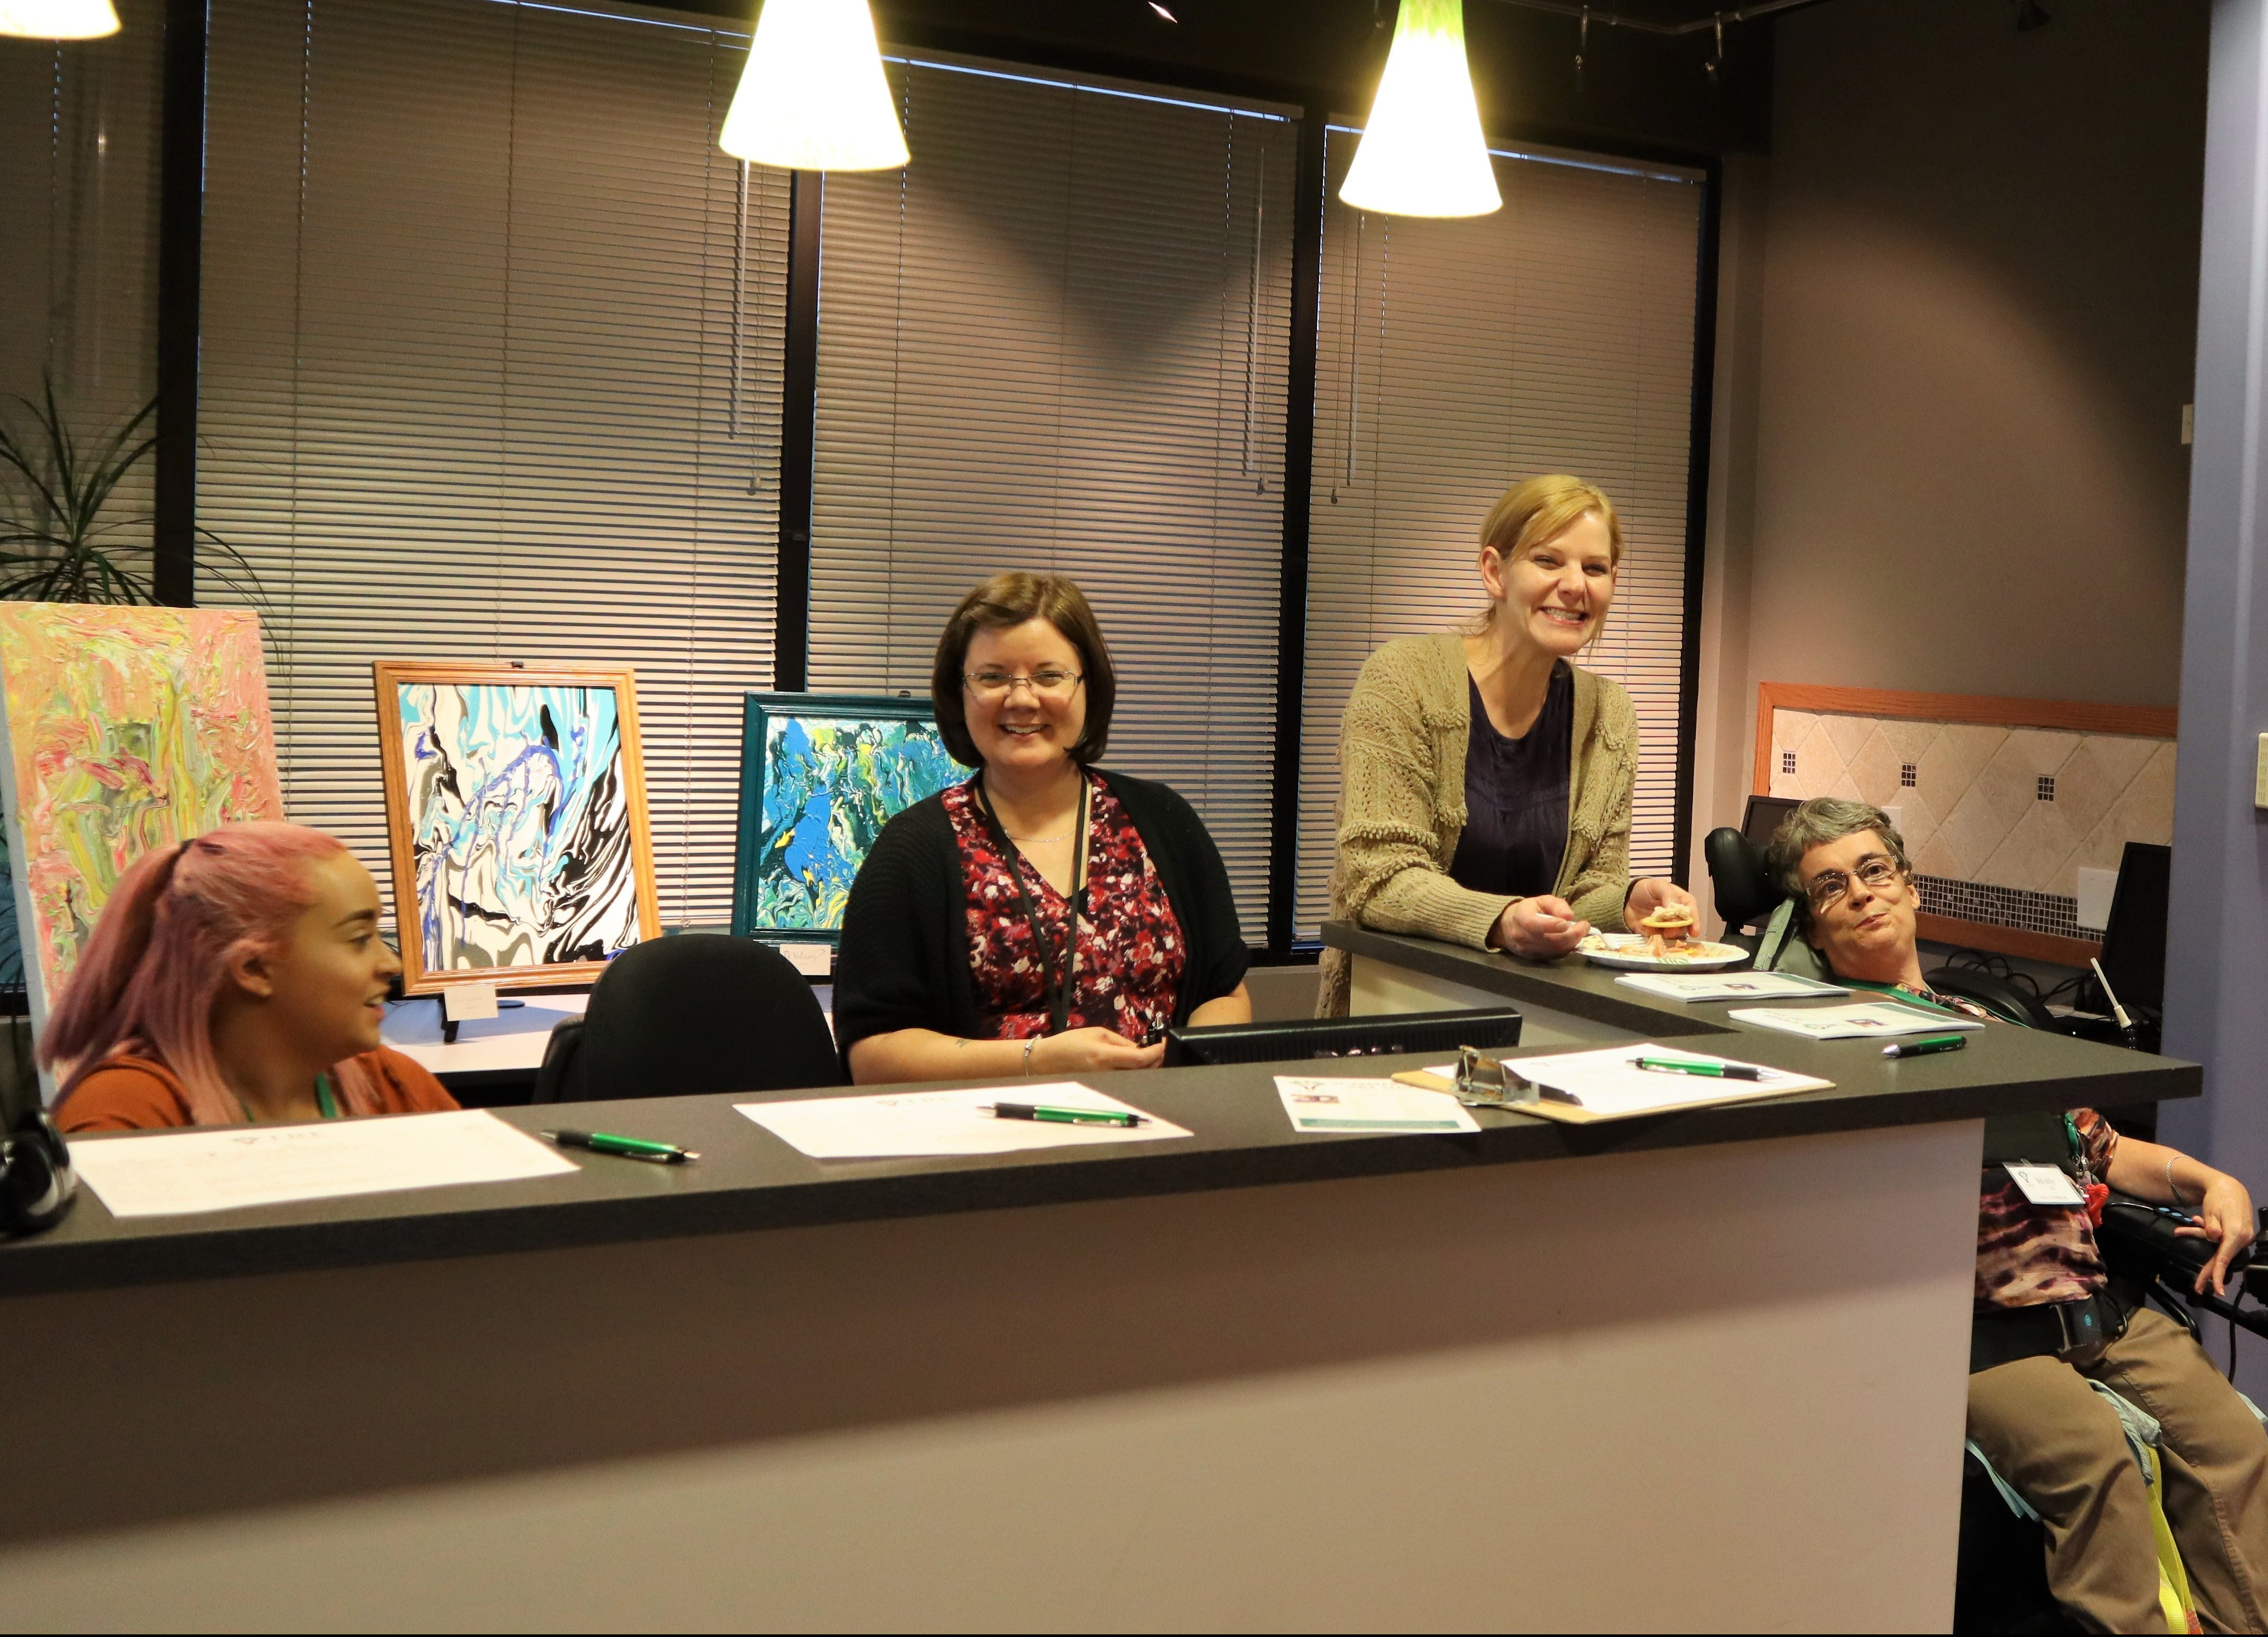 people smiling at a desk to greet guests of the Art Show